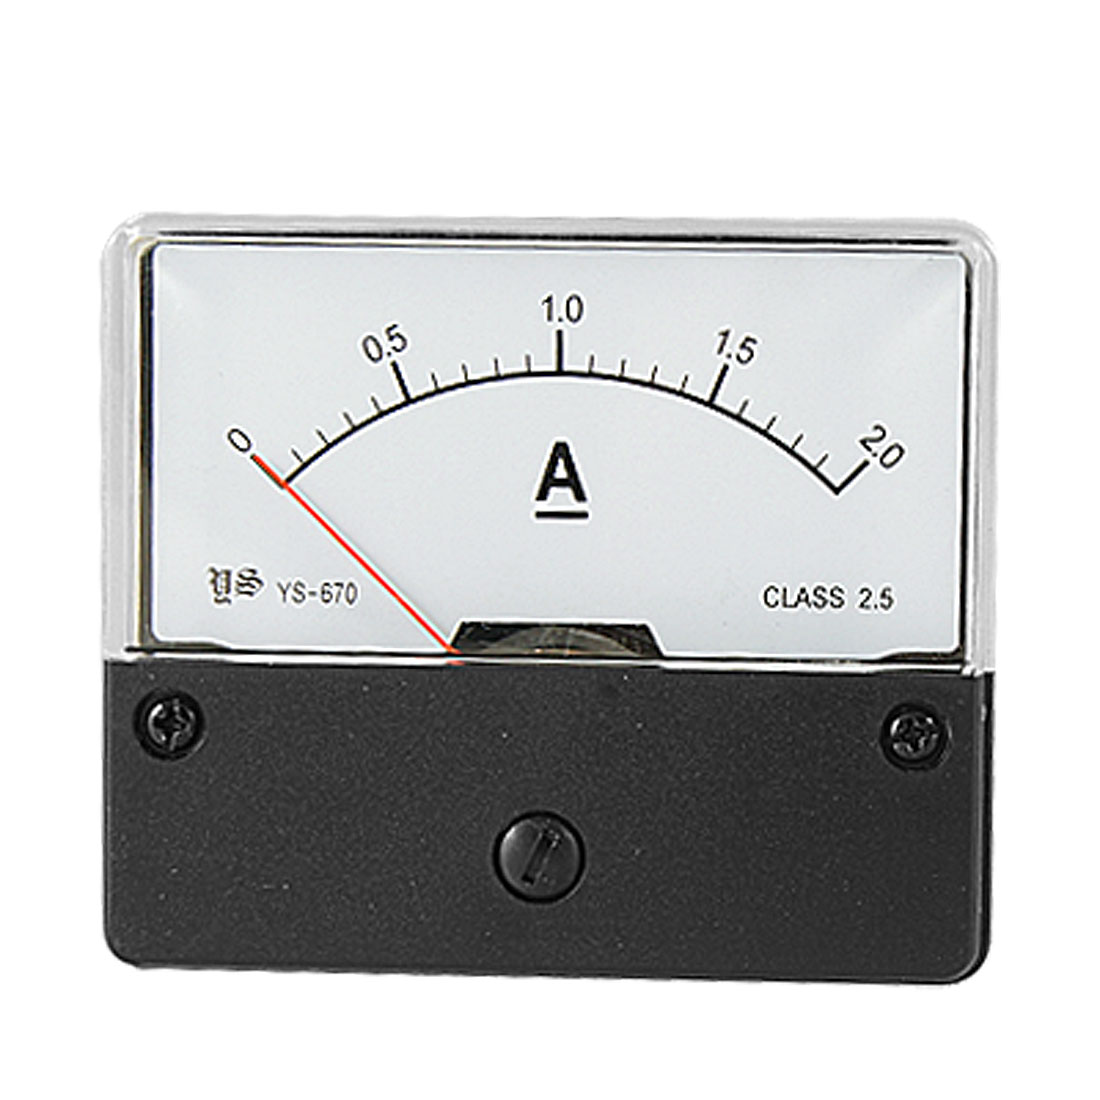 Rectangle Panel Meter DC 0-2.0A Current Range Ammeter w Fitting Part